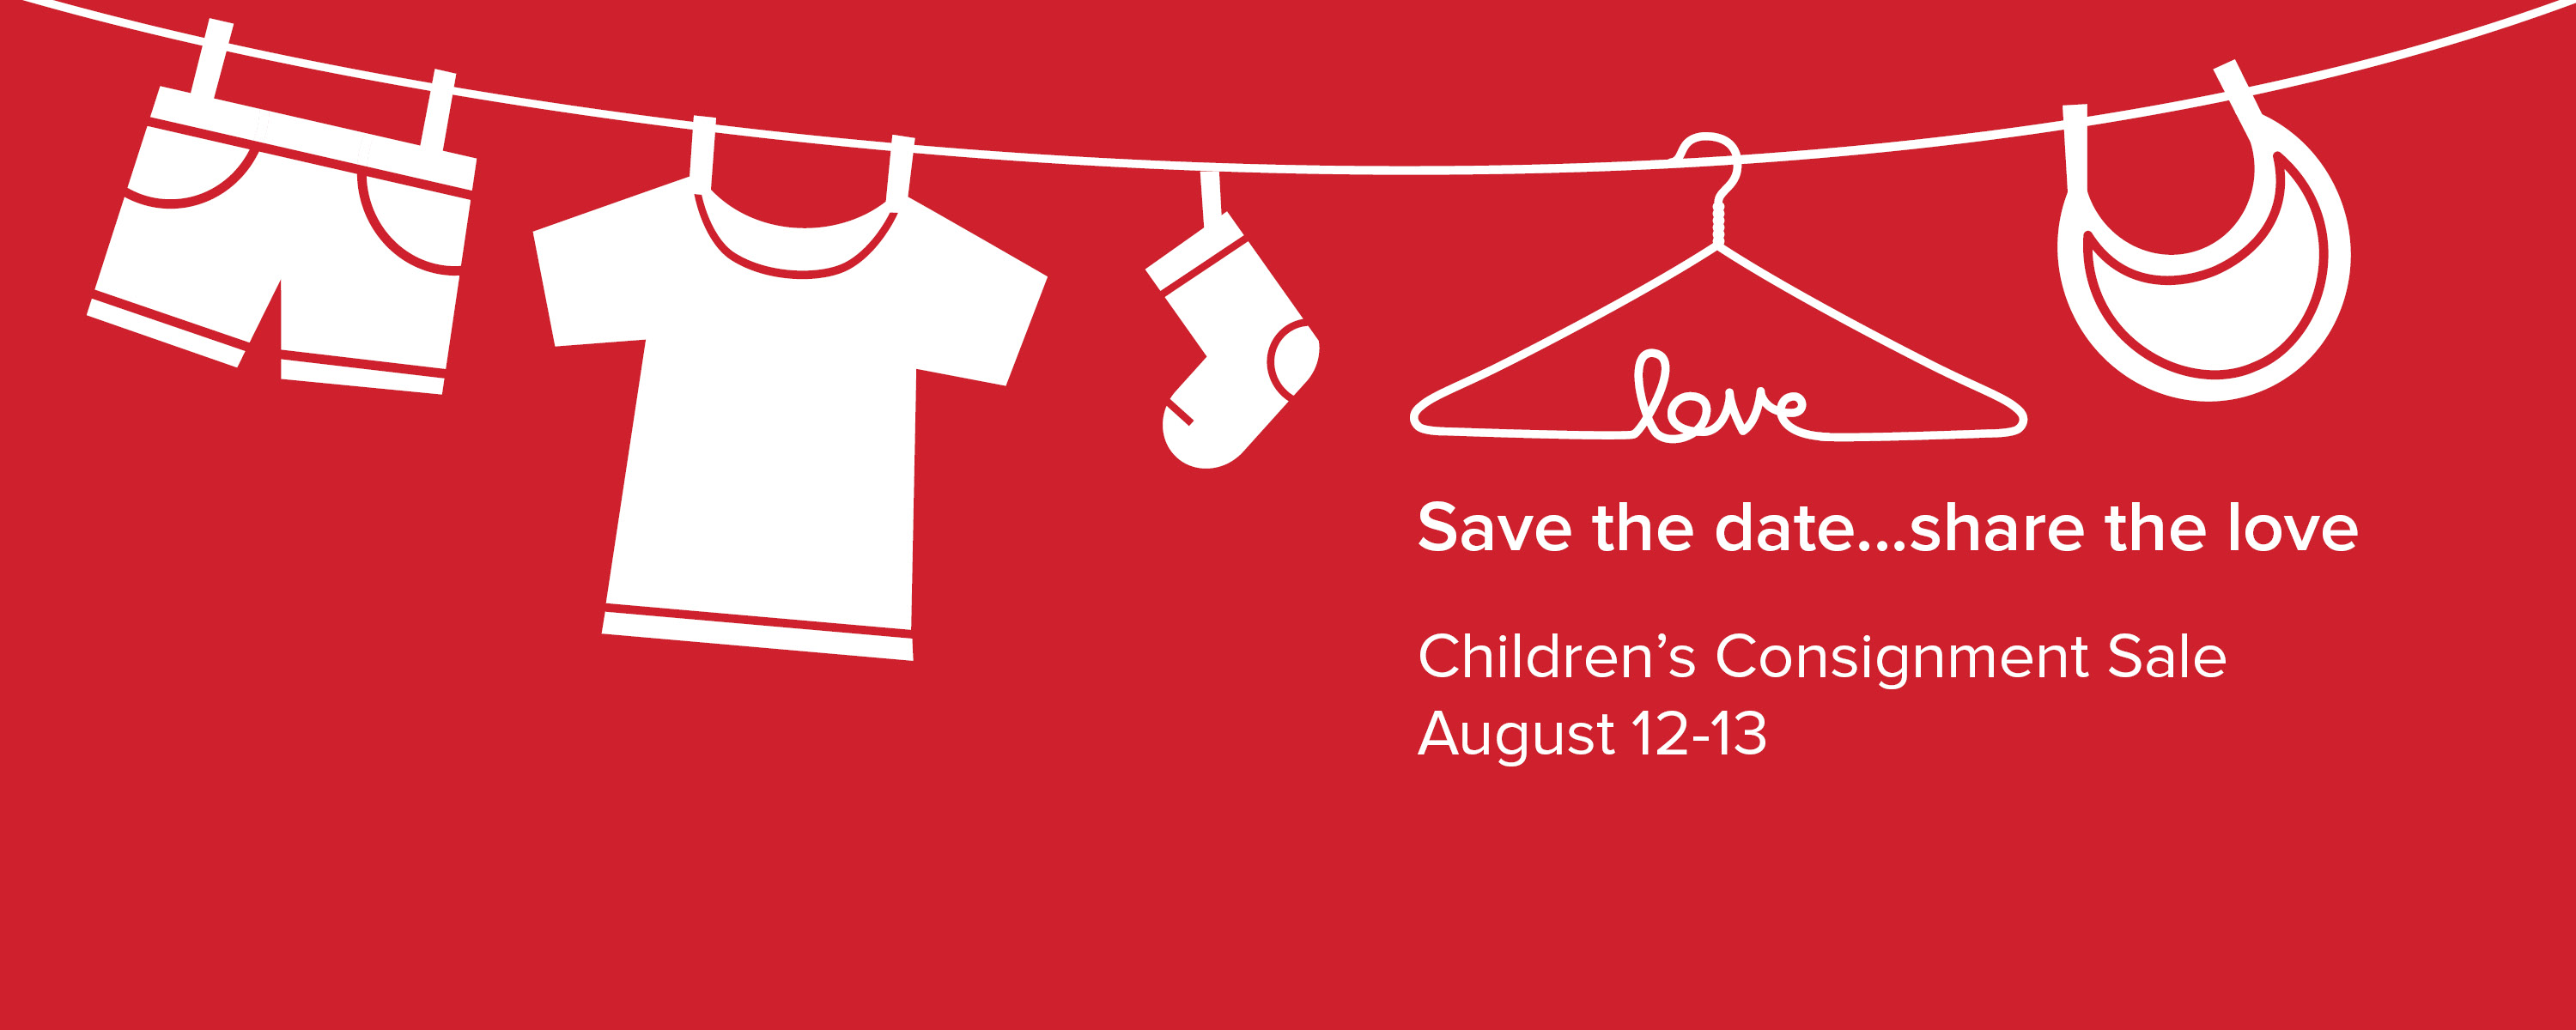 2016 Children's Consignment Sale